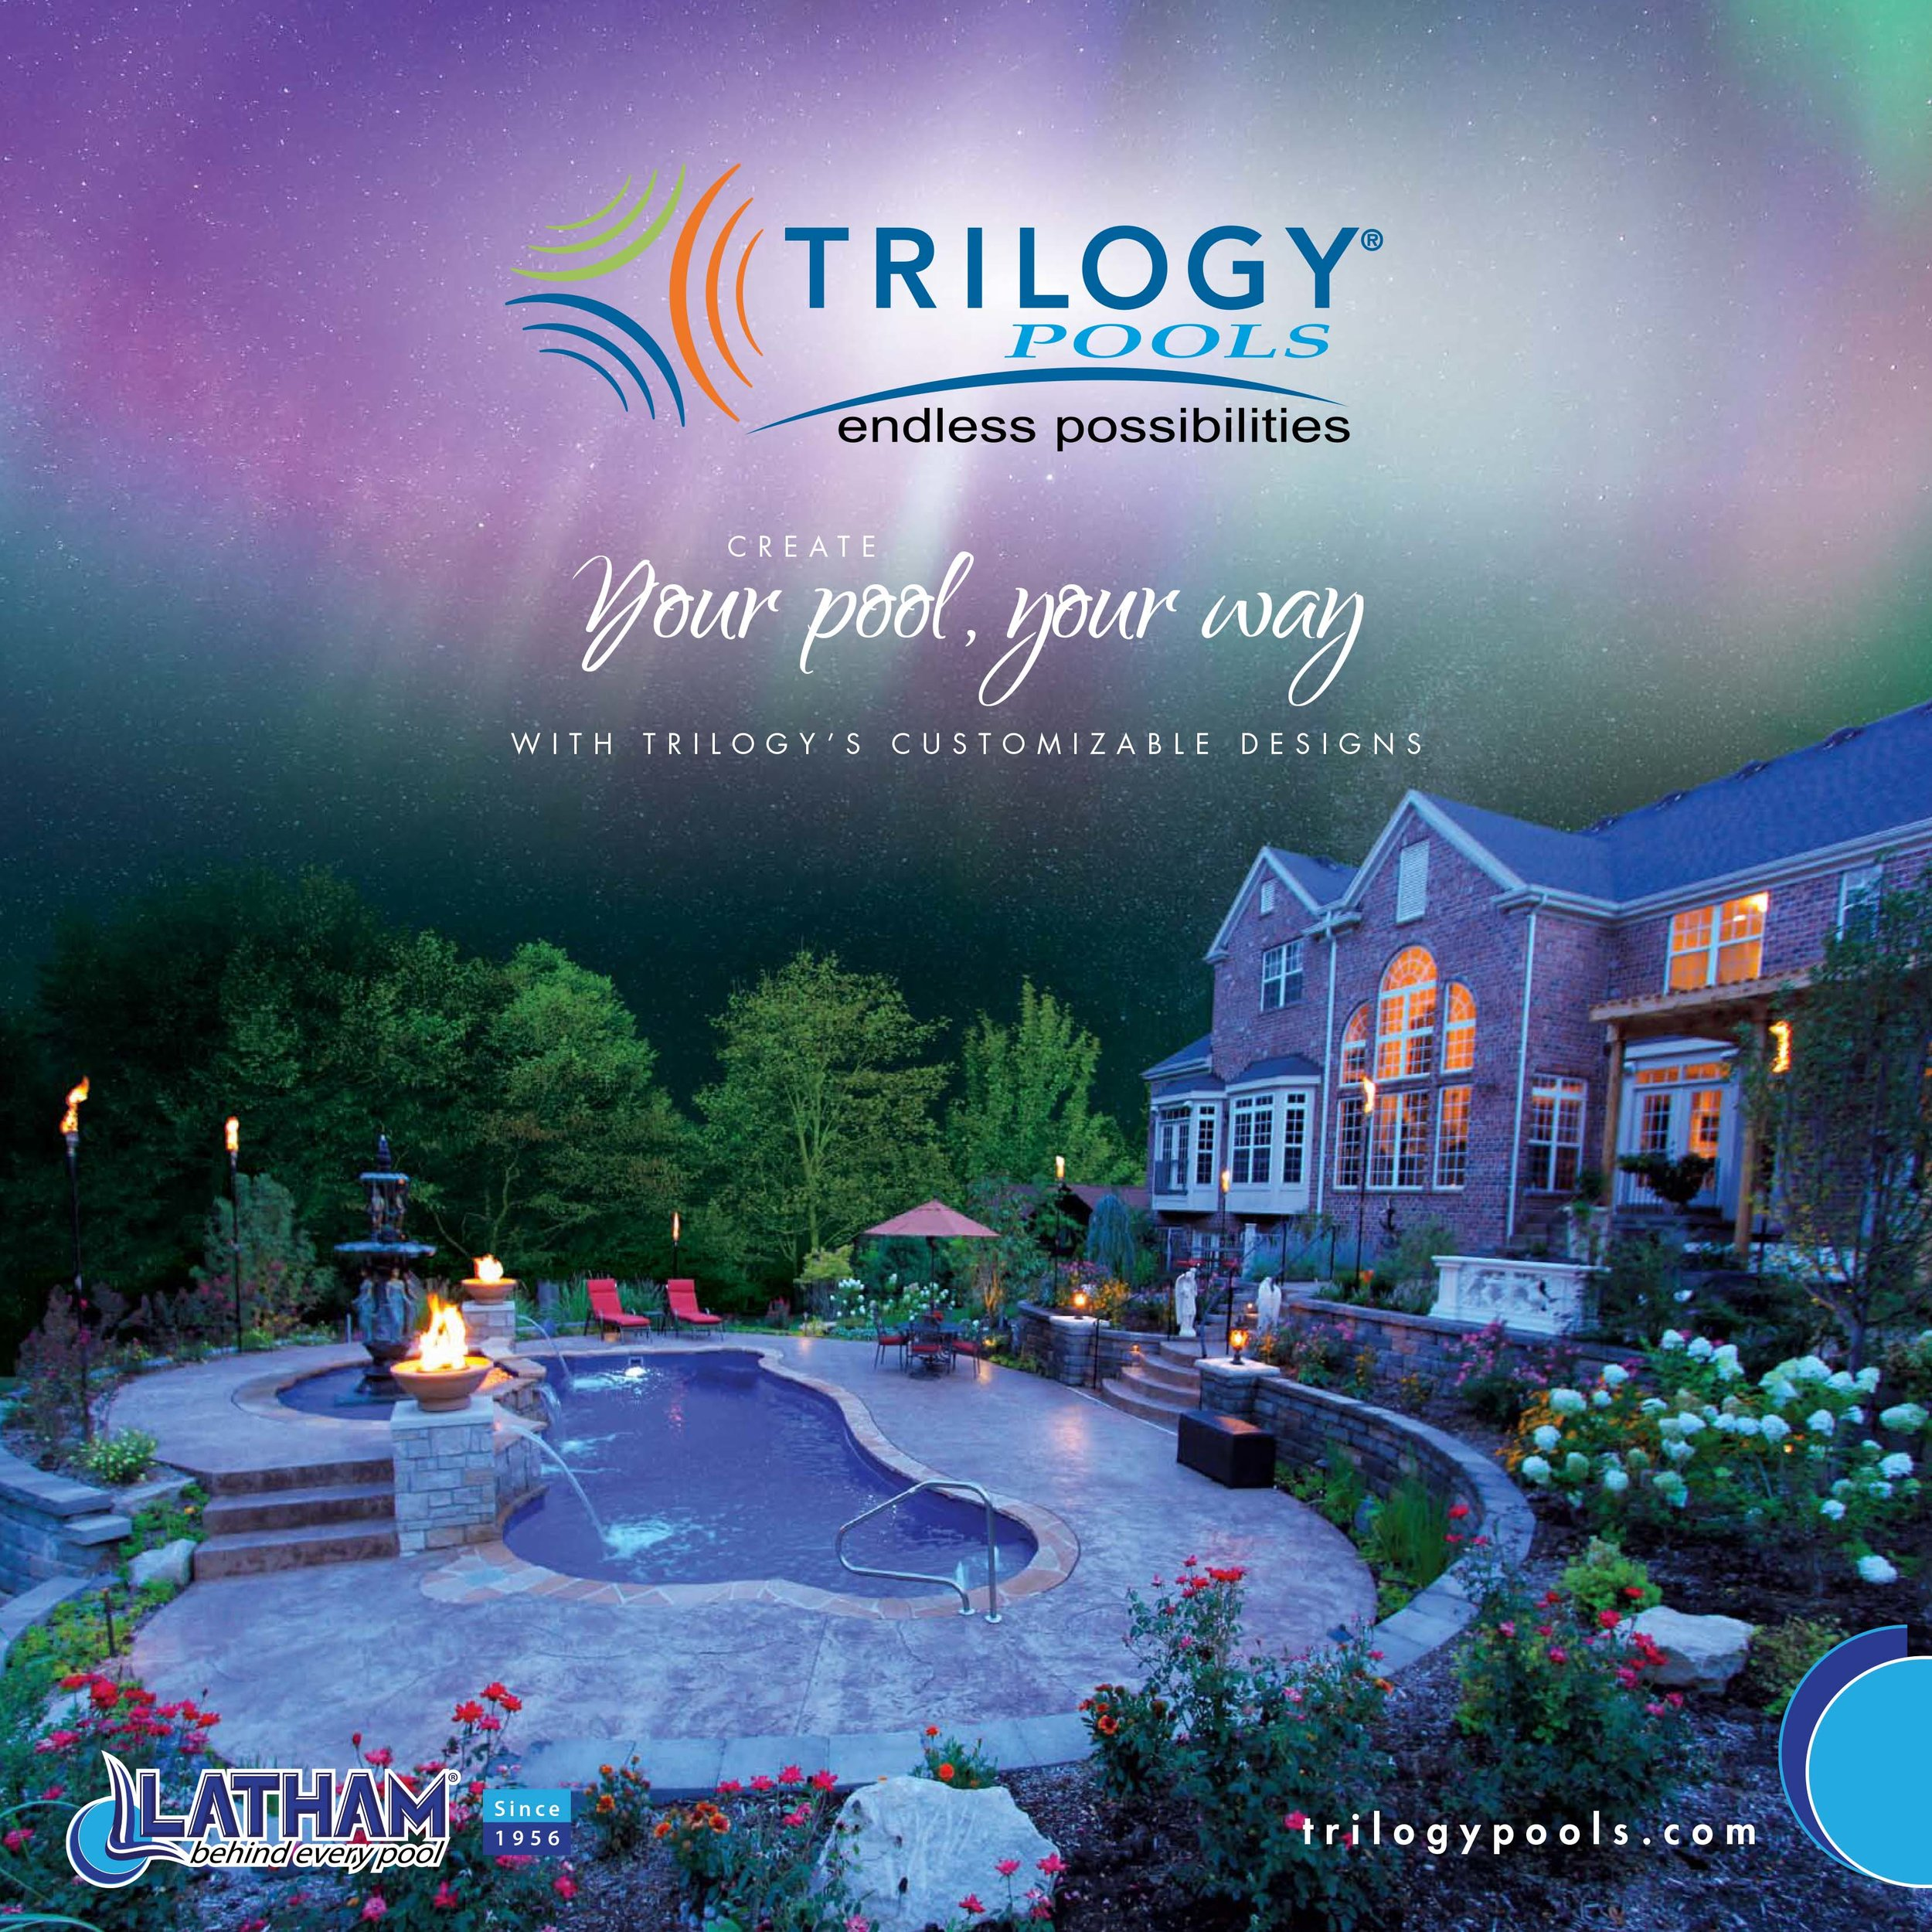 00 Trilogy Front Cover.jpg